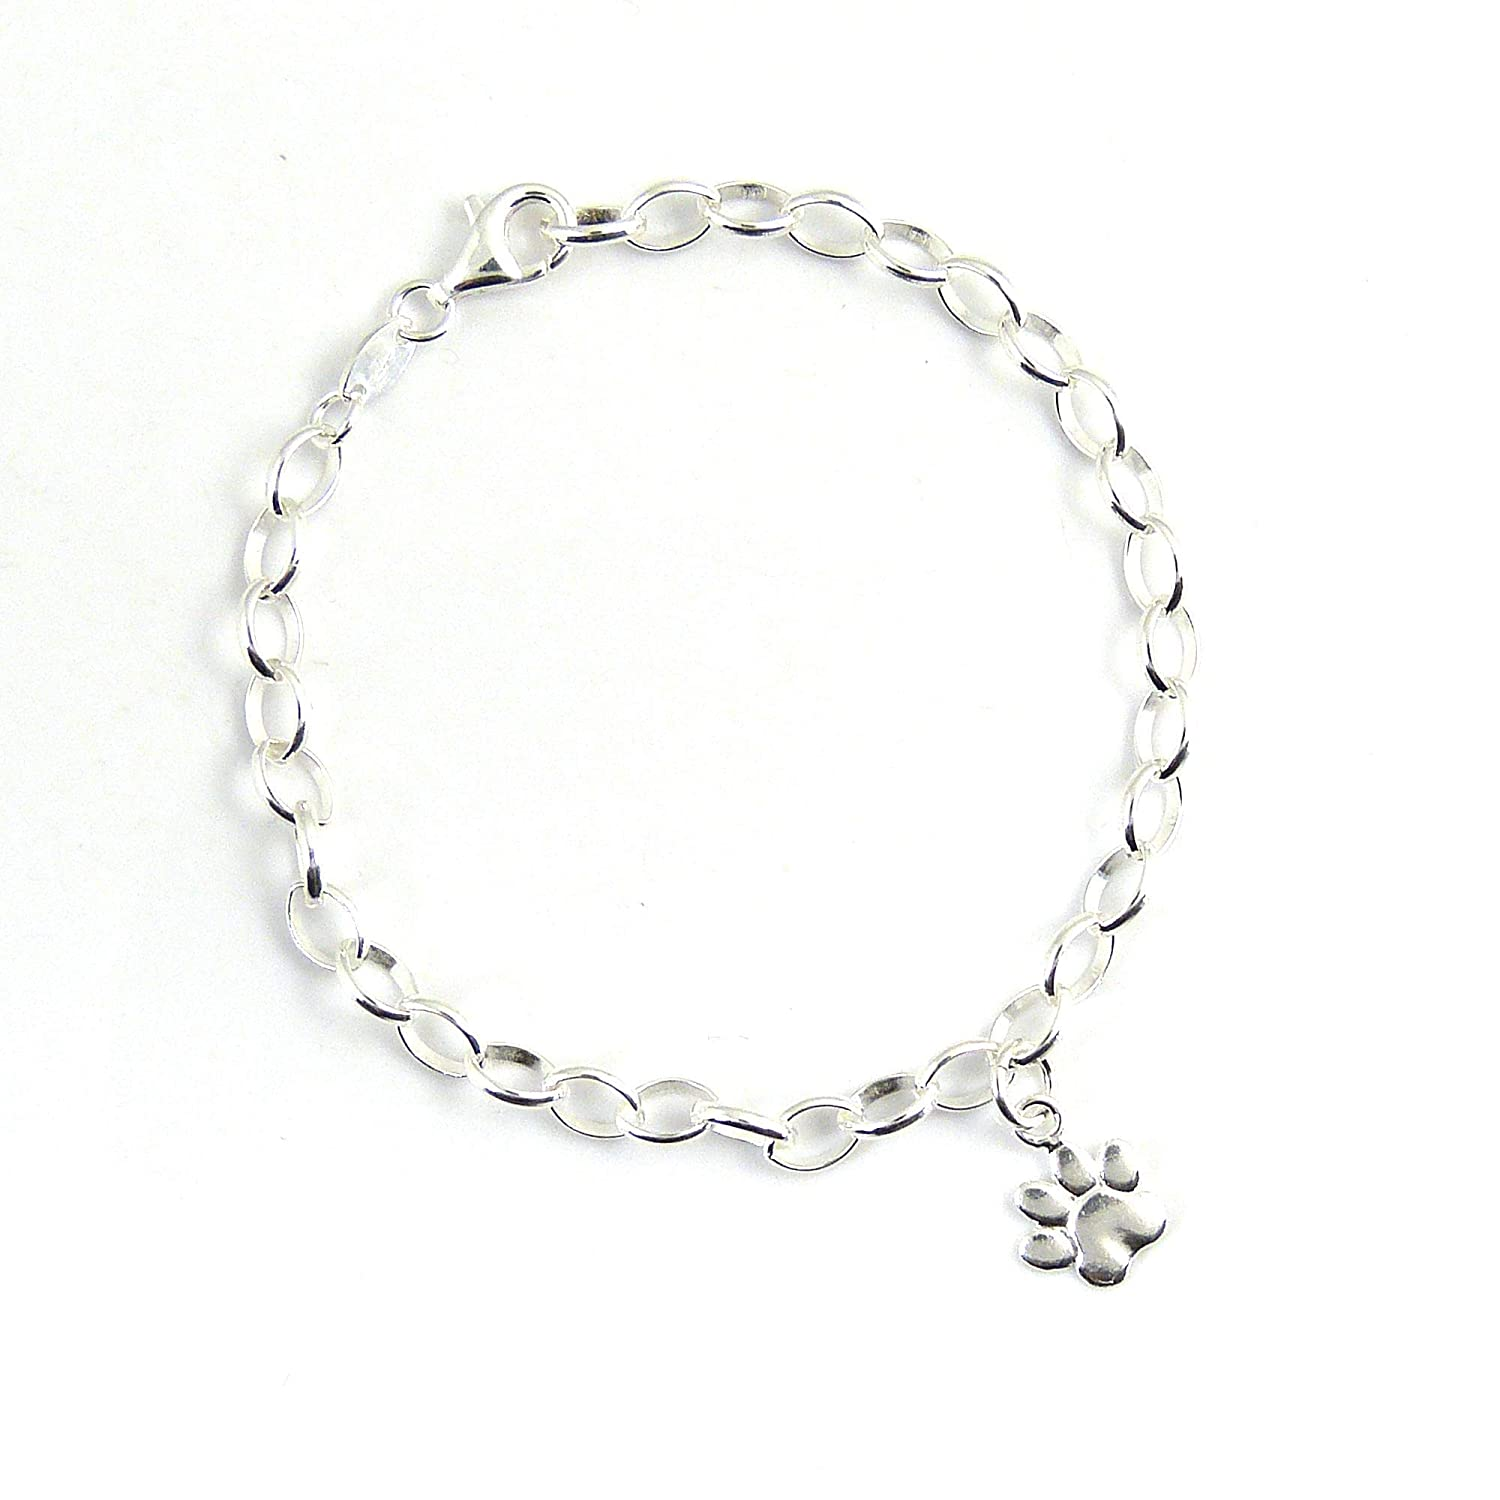 Ready To Ship 925 Sterling Silver Paw Bracelet Gift Boxed